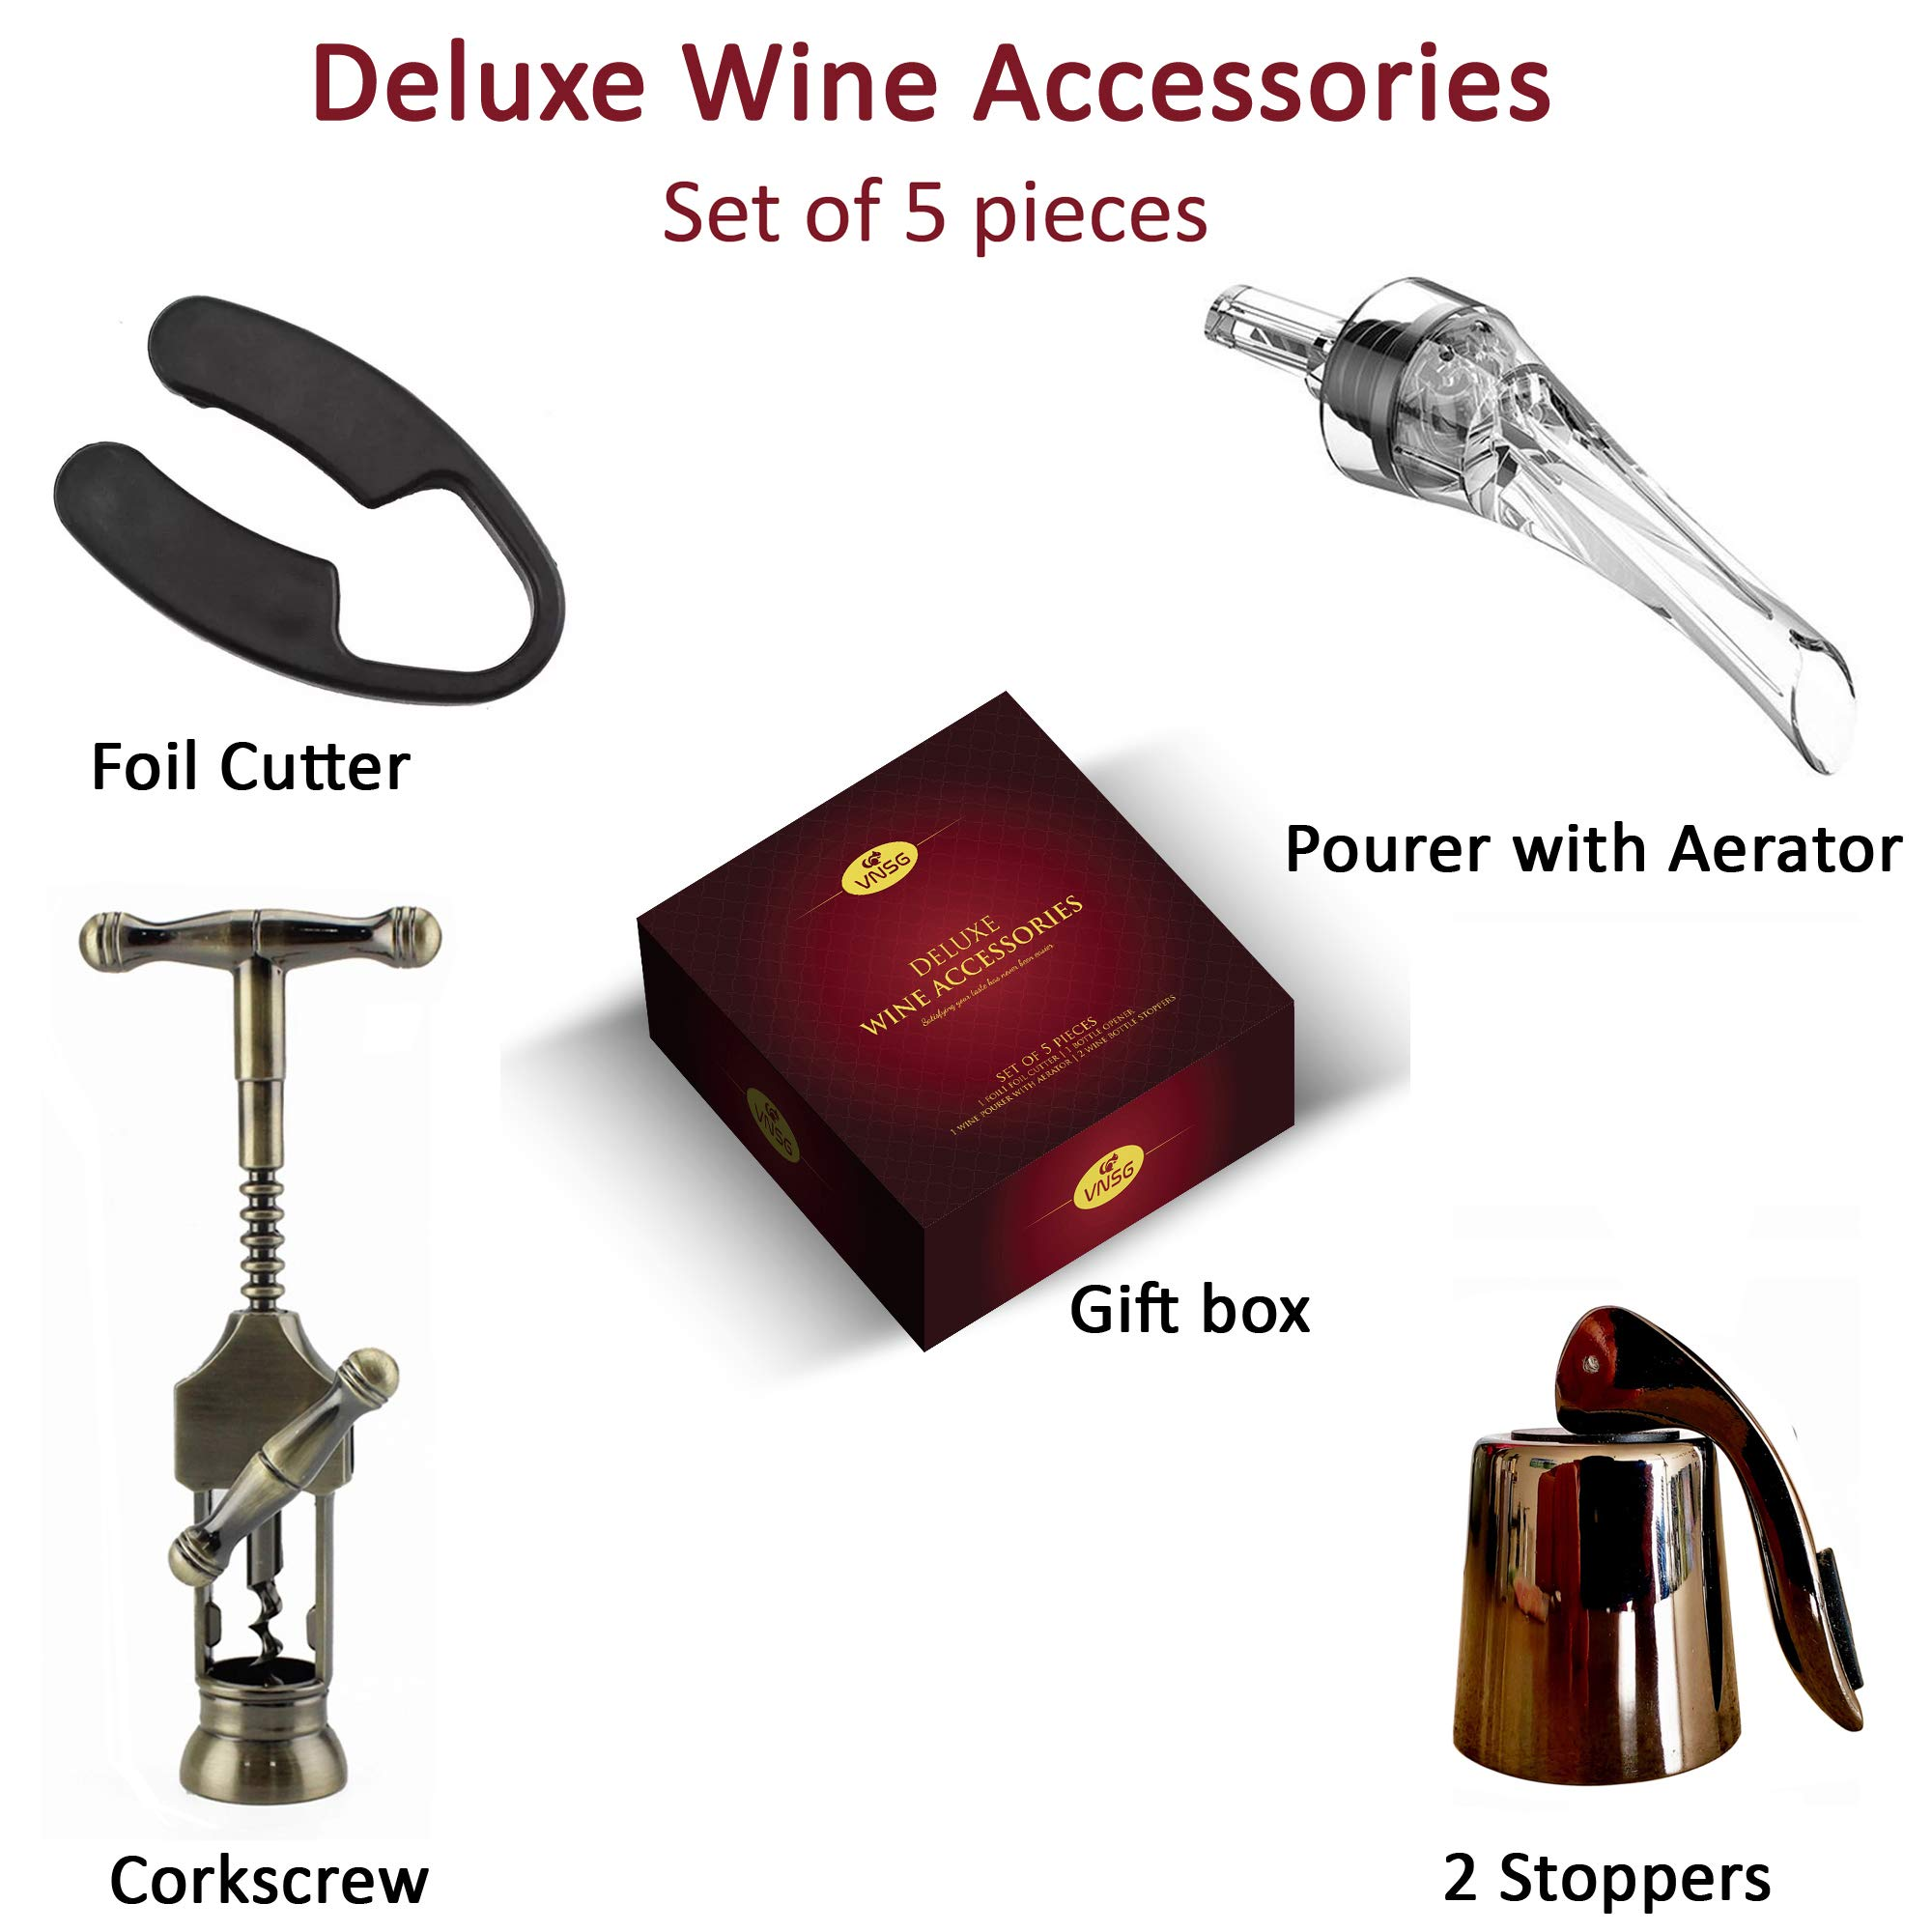 VNSG Deluxe Wine Set┃Wine Accessories┃Set of 5 pieces (Foil Cutter, Wine Bottle Opener/Corkscrew, Wine Aerator, 2 Bottle Stoppers/Wine Preserver)┃Wine Gift Set┃House Warming Presents┃Wine Opener Set